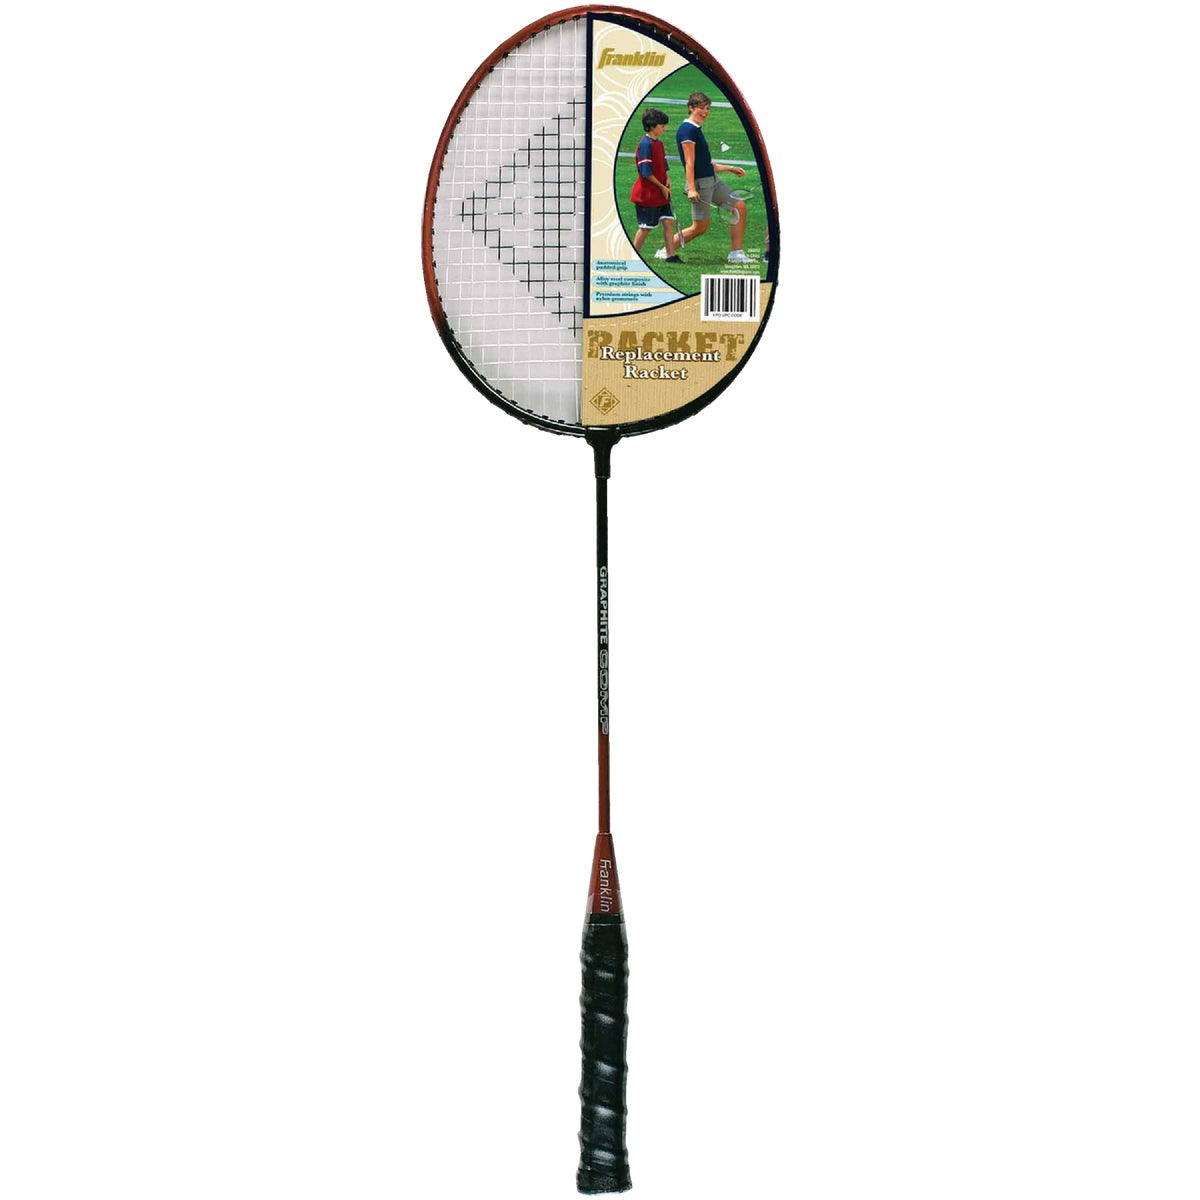 BADMINTON RACKET - 52623 by Franklin Sports